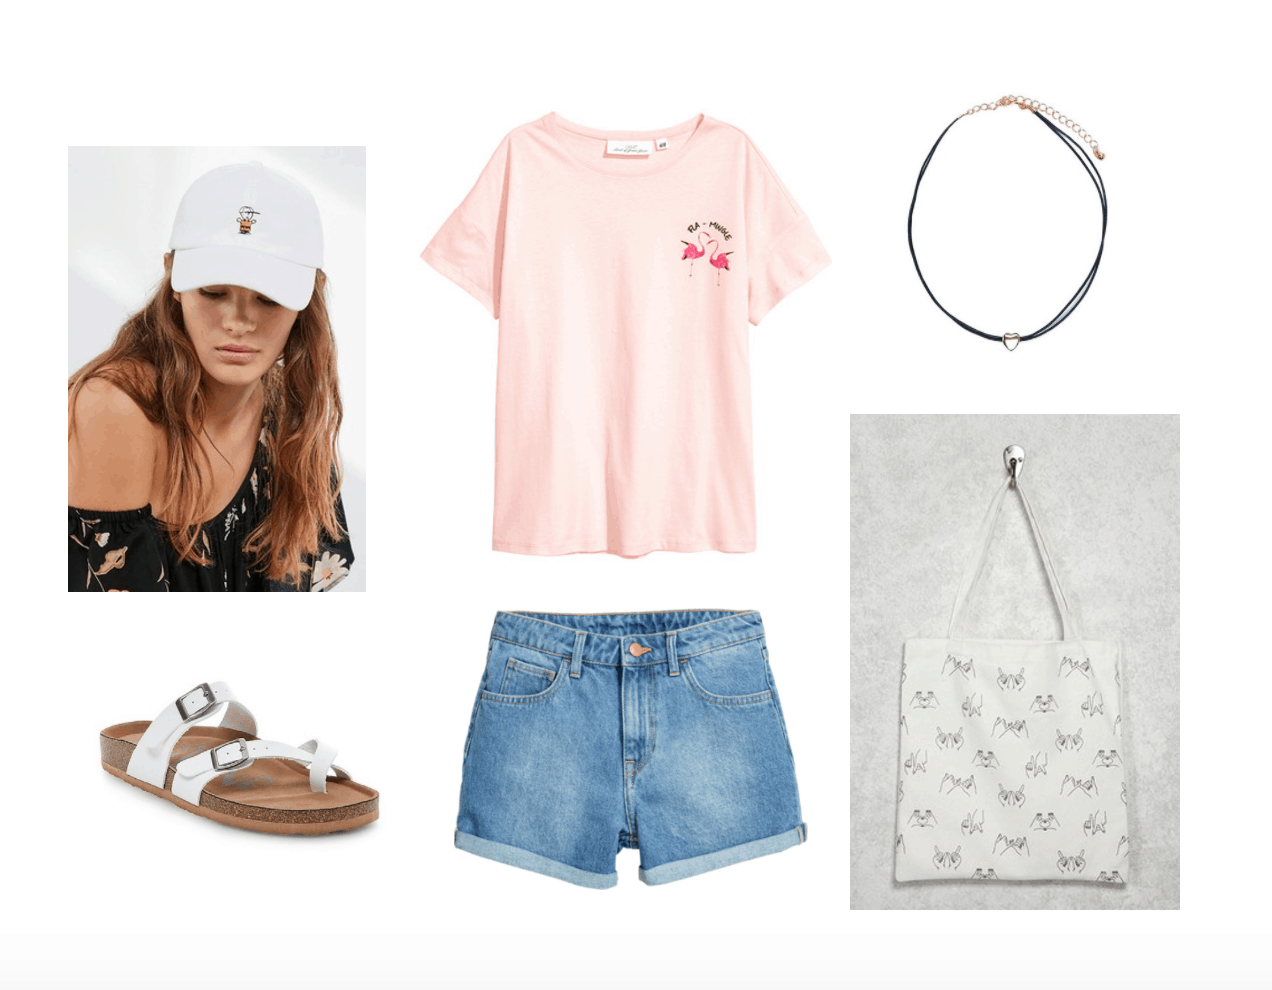 Back to school outfits for college: Pink tee shirt, white dad hat, white footbed sandals, denim cutoffs, printed tote bag, choker